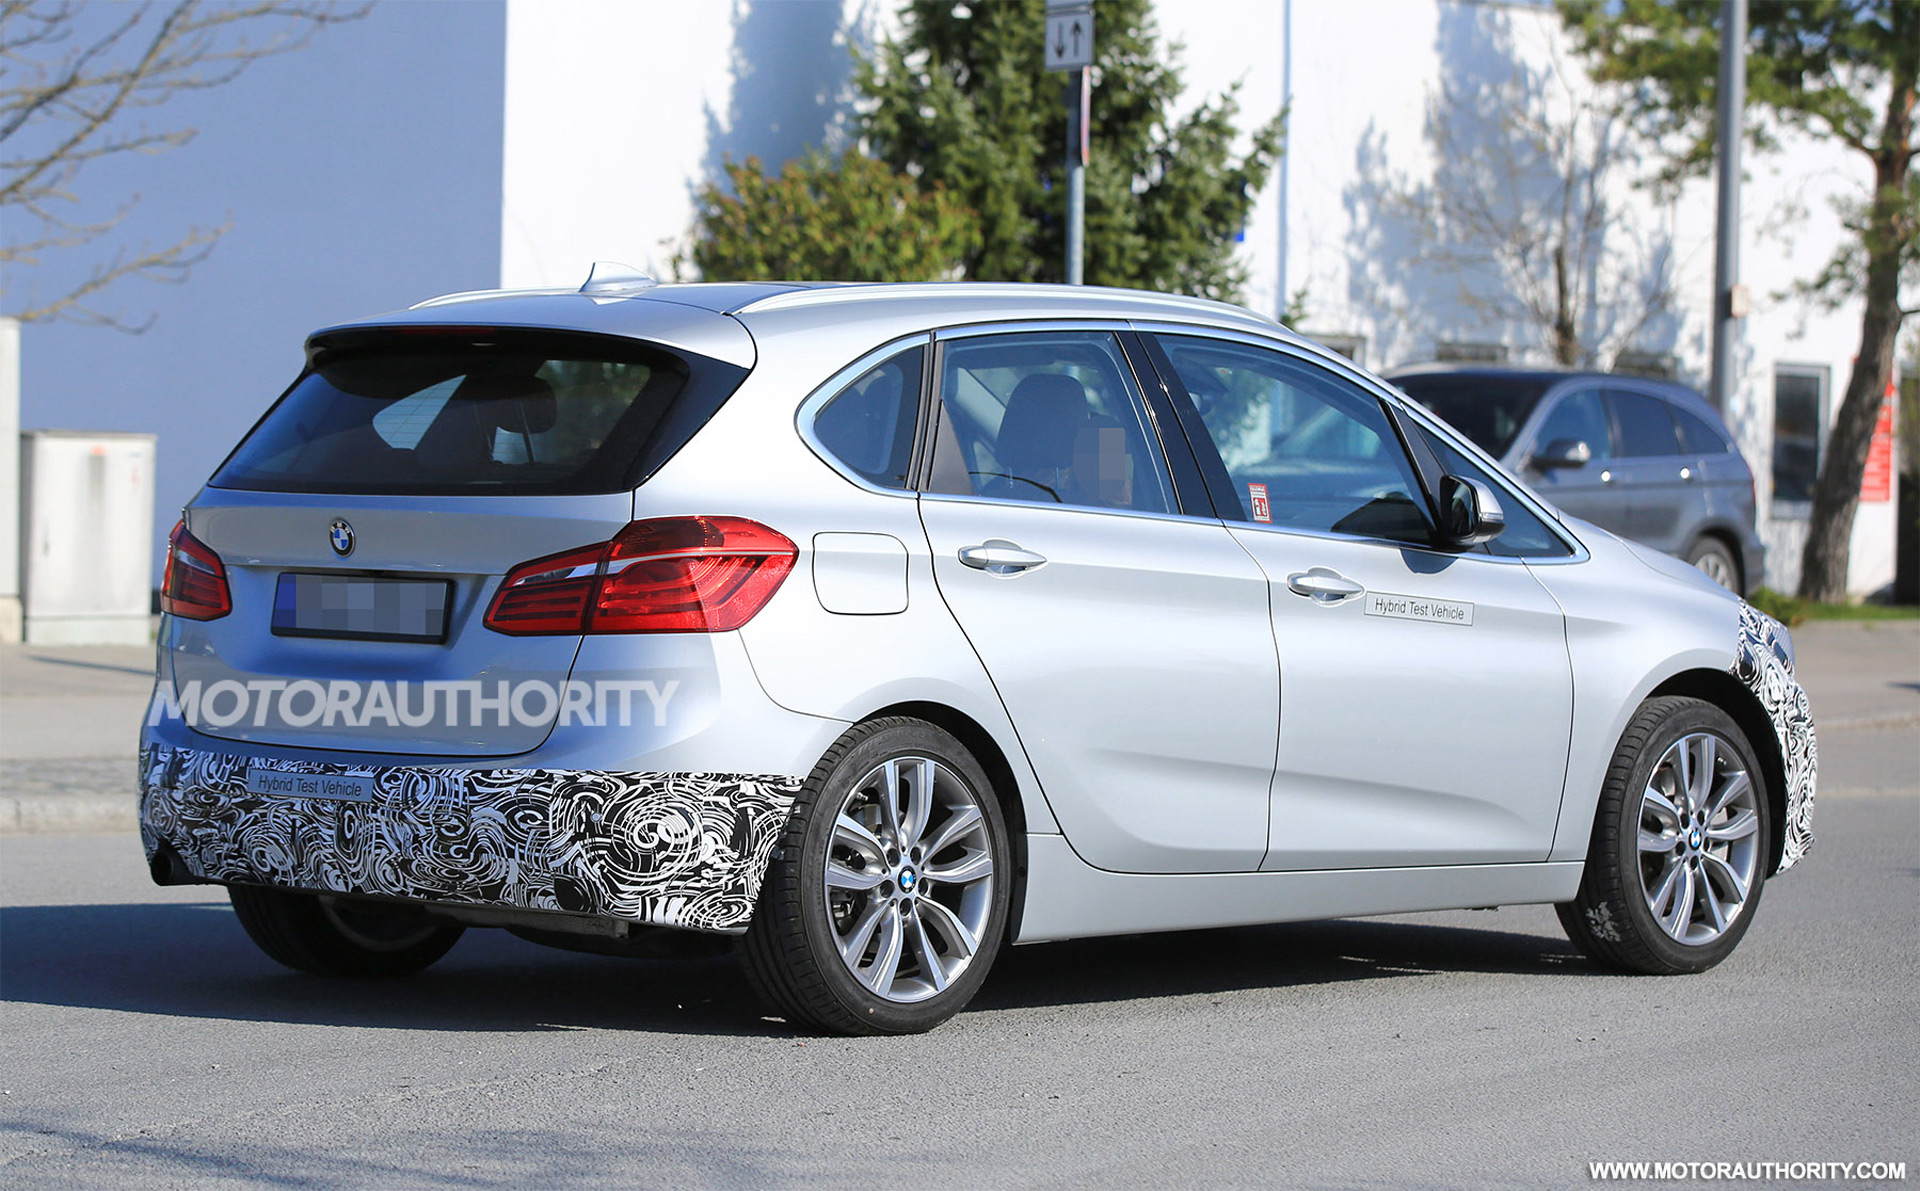 2018 bmw 2 series active tourer spy shots autozaurus. Black Bedroom Furniture Sets. Home Design Ideas